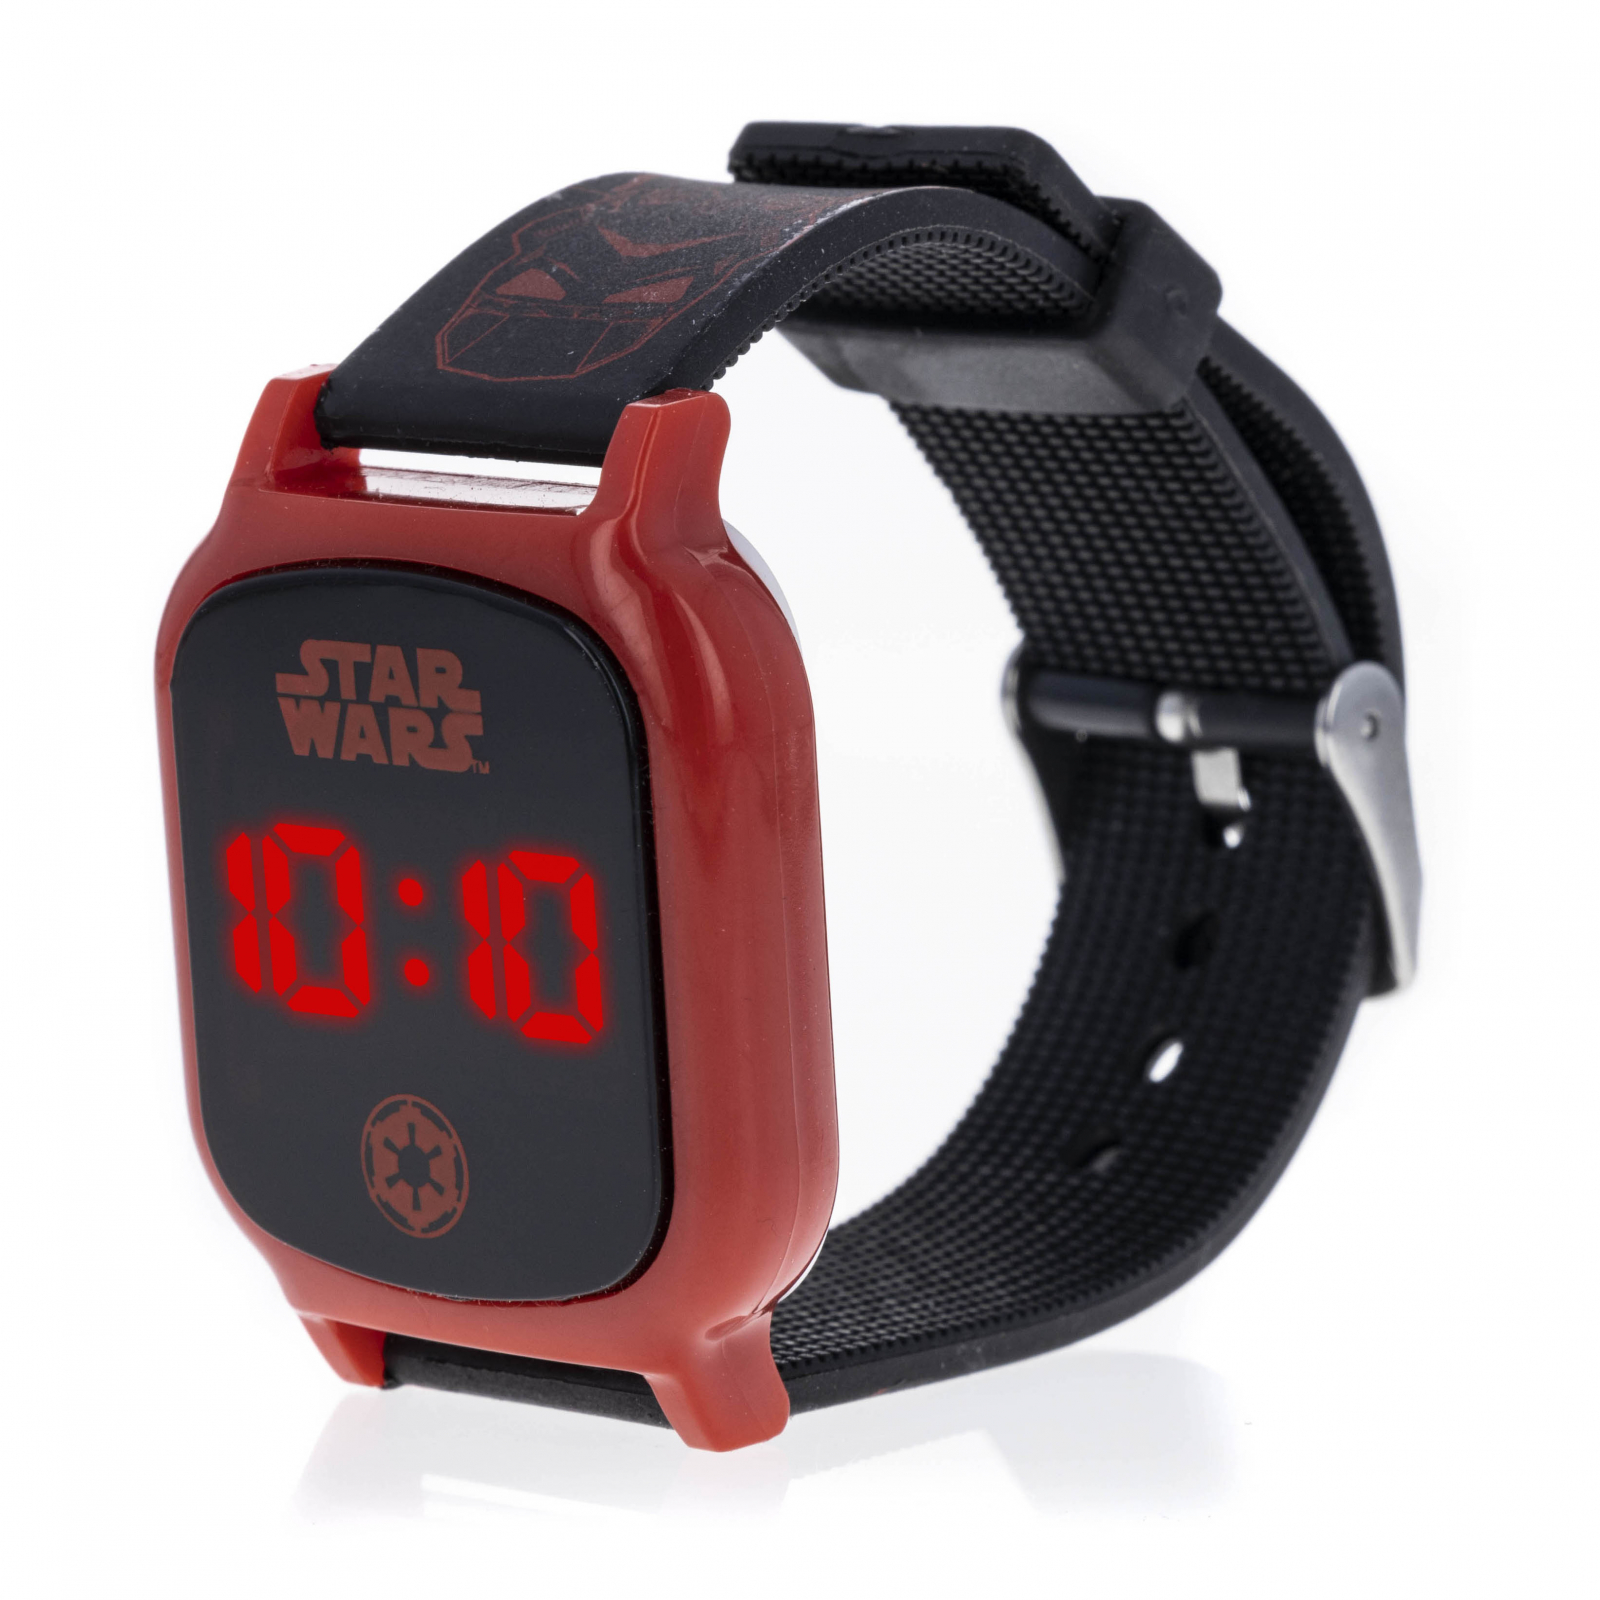 Licensed Star Wars LED Display Digital Touch Screen Watch